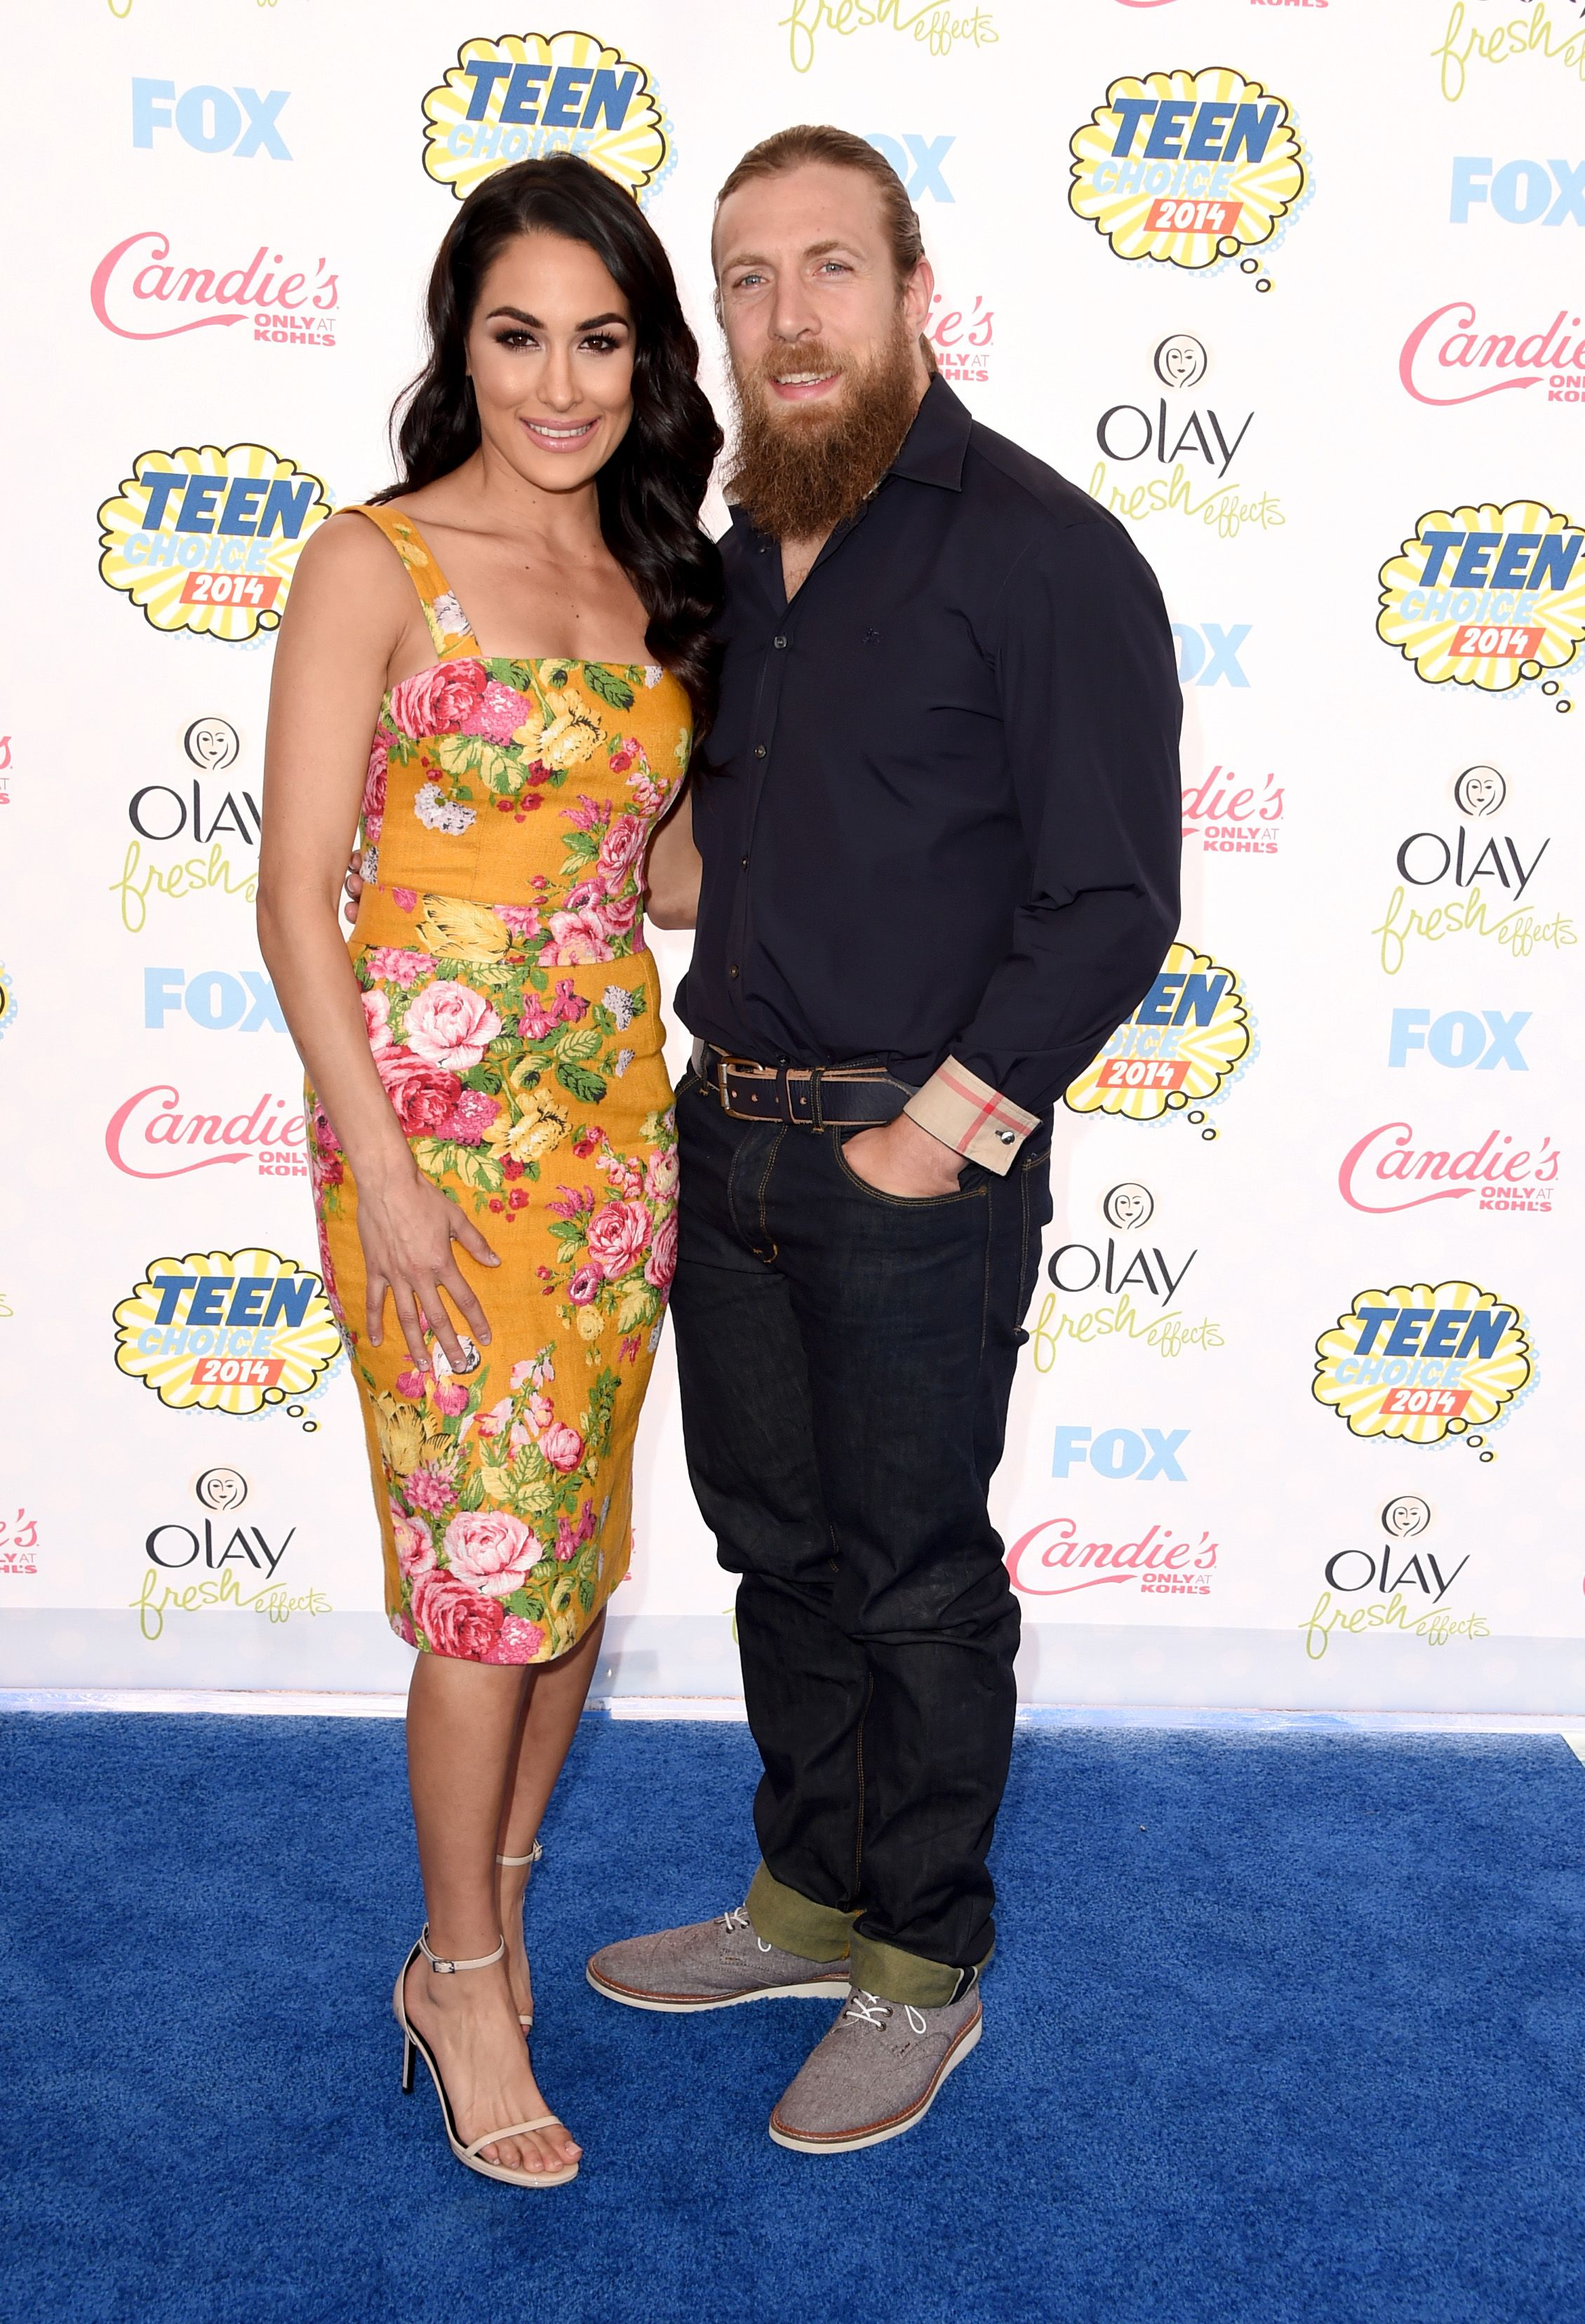 WWE Diva Brie Bella and WWE Superstar Daniel Bryan at FOX's 2014 Teen Choice Awards at The Shrine Auditorium on August 10, 2014 | Photo: Getty Images